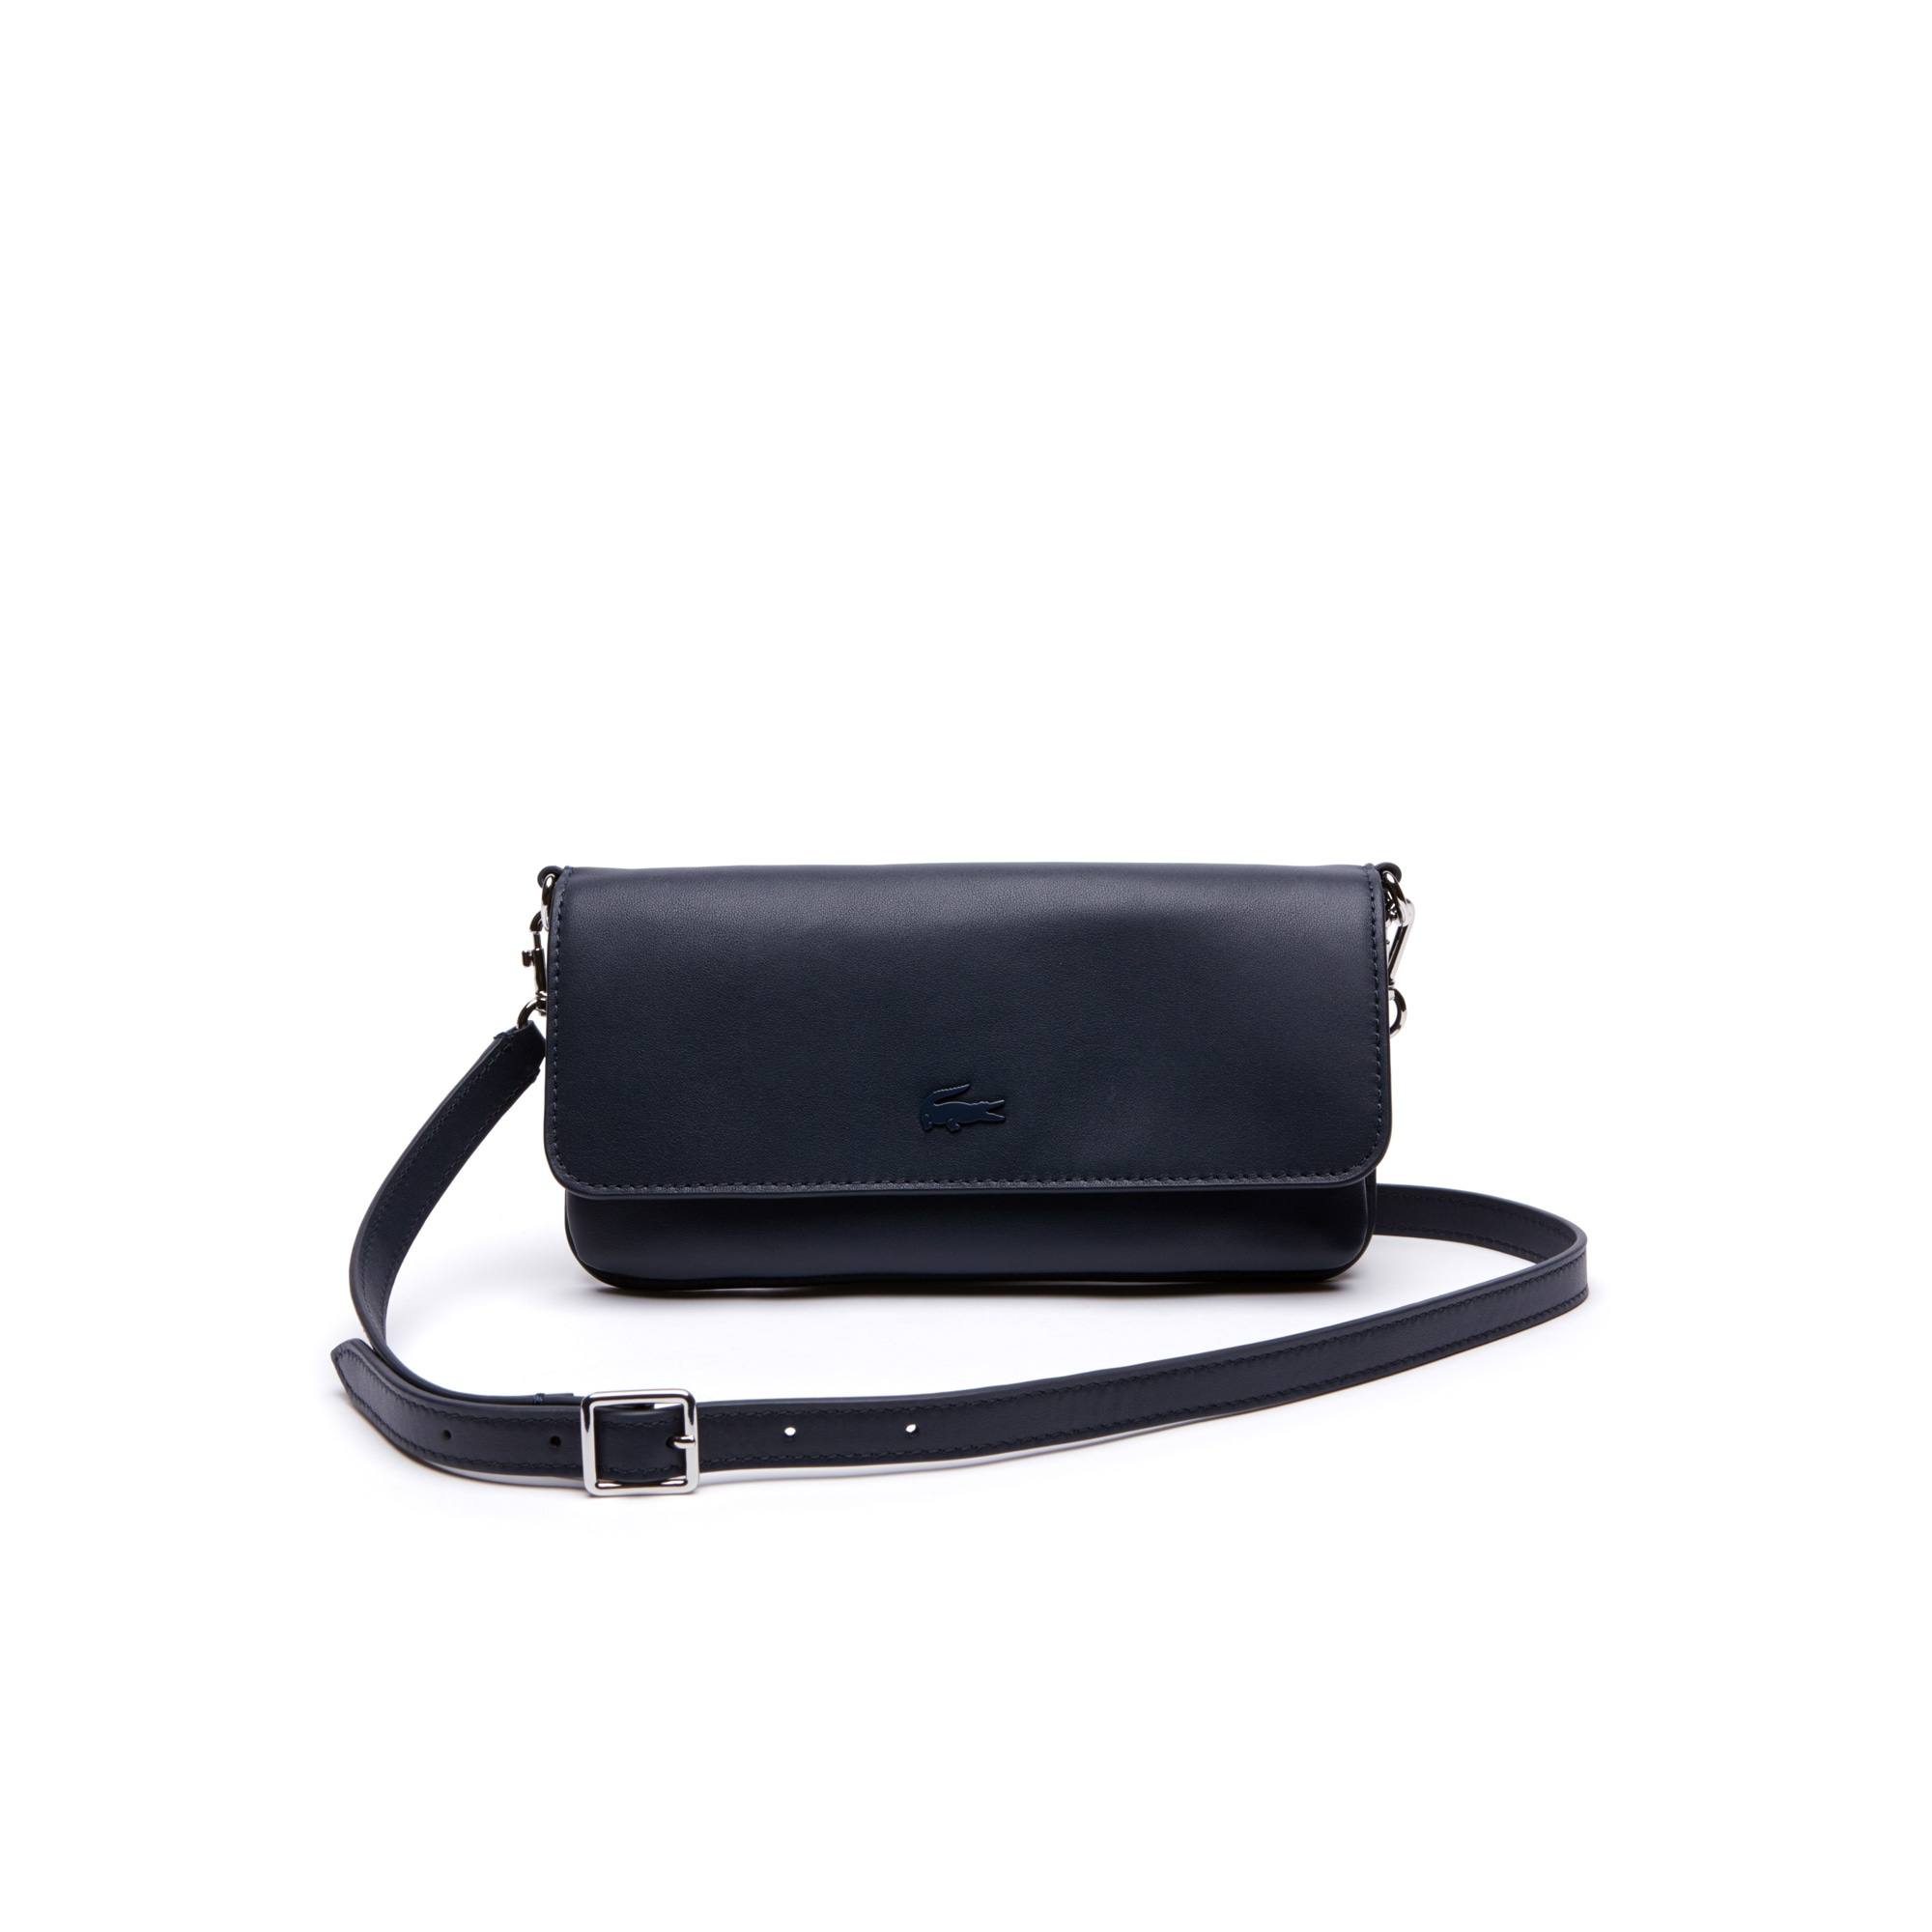 Cartera Bolso Purity De Piel Flexible Monocromo 6 Tarjetas